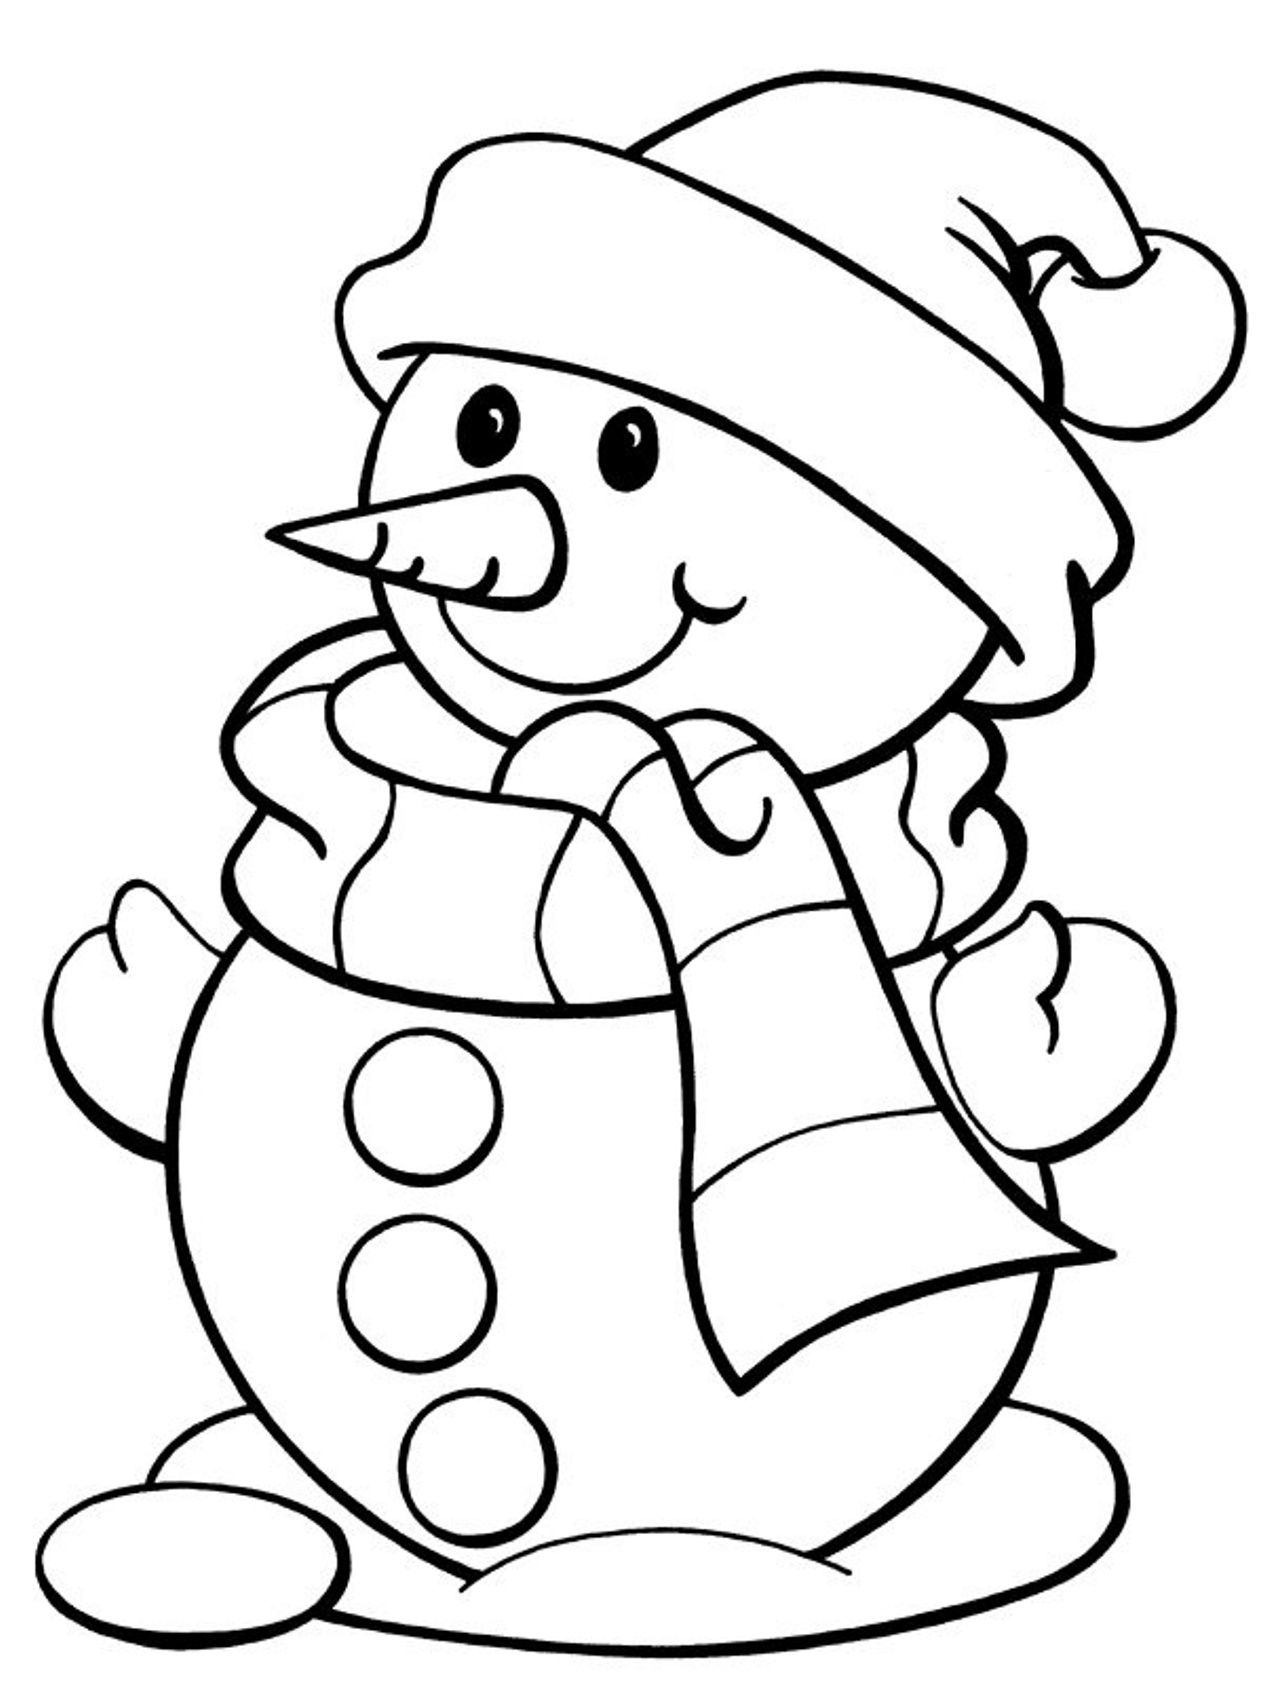 coloring scenes for kids free printable winter coloring pages for kids for scenes coloring kids